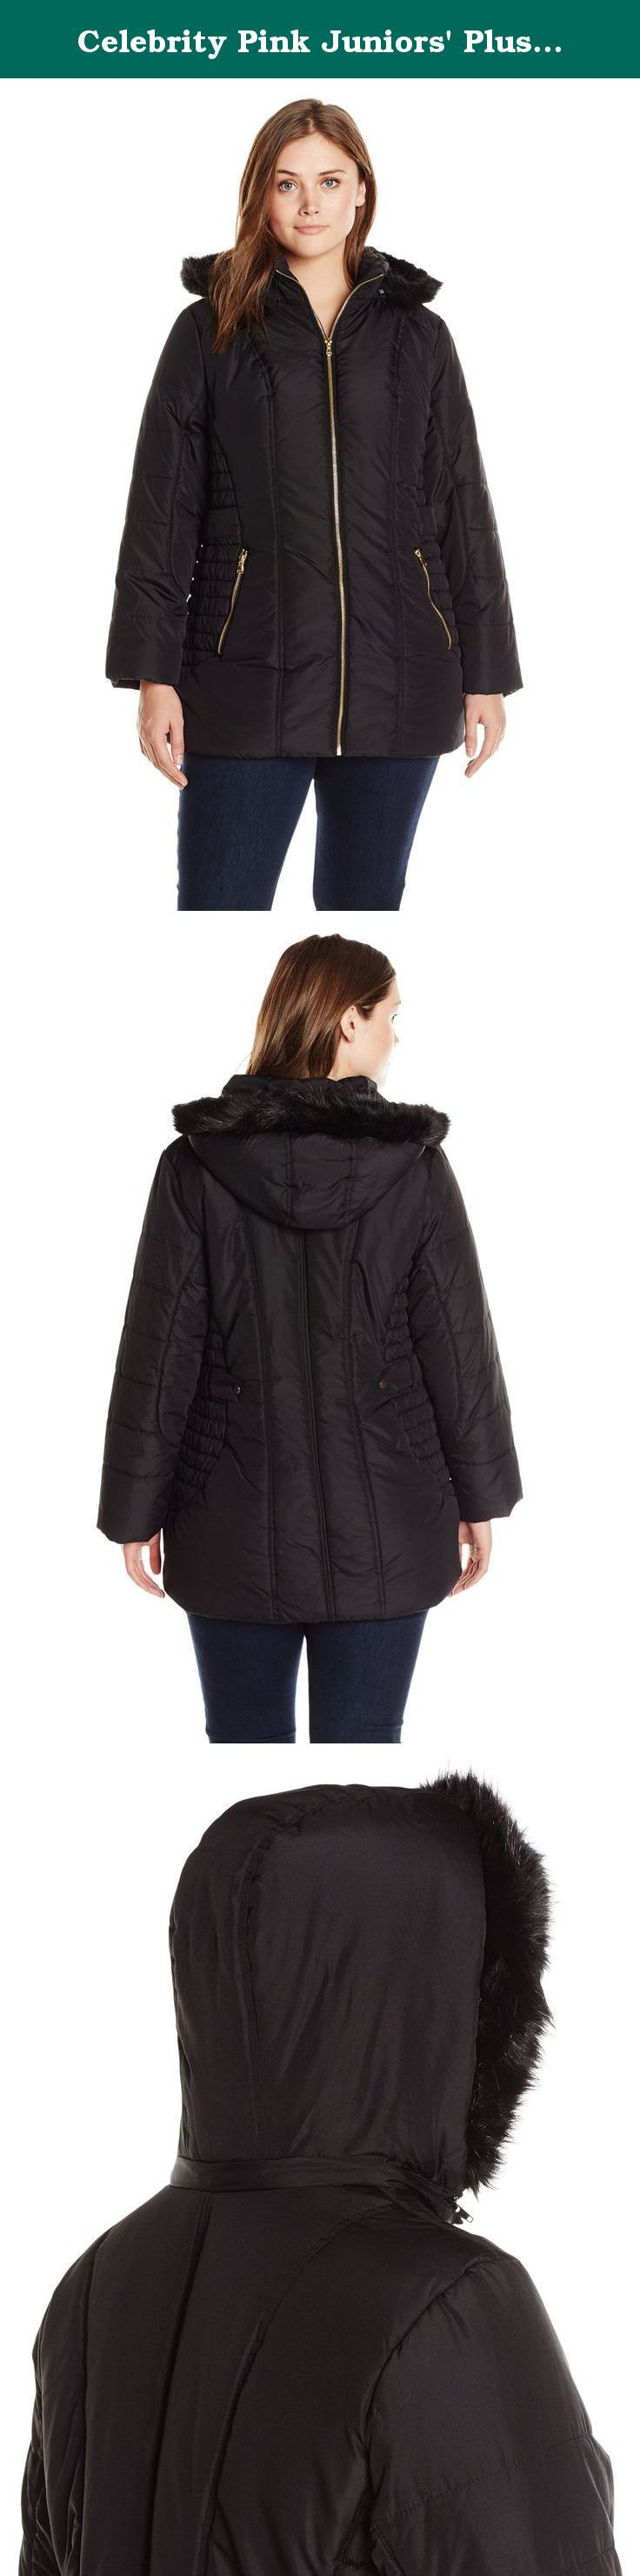 Celebrity Pink Juniors' Plus-Size Puffer Jacket with Faux Fur HoodJuniors' Plus, Black, 1X. Juniors plus size walker length fitted polyfill puffer coat.